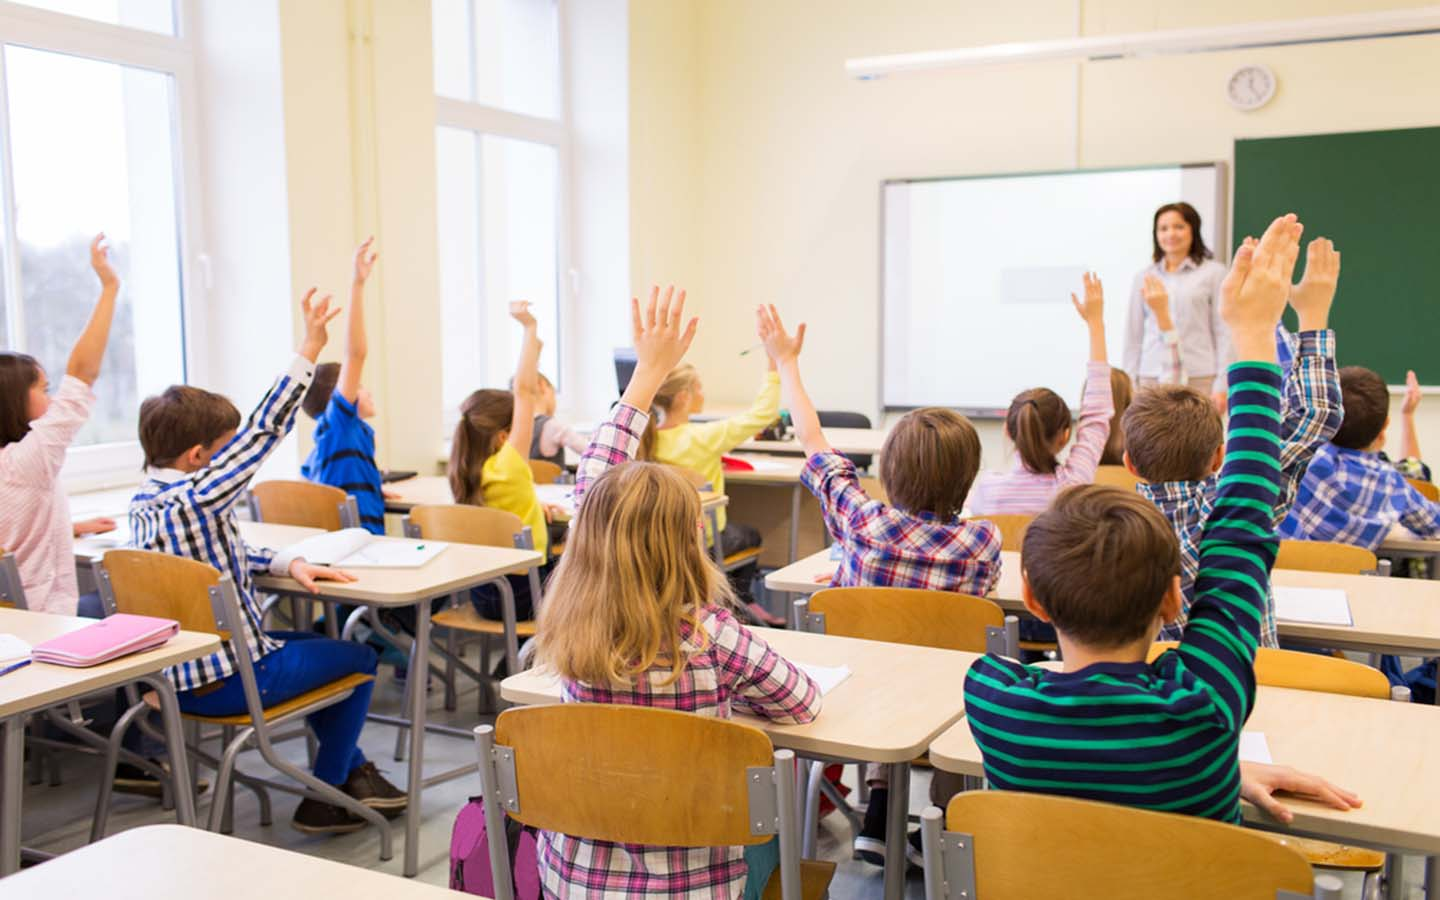 Children raising their hands to answer a question in class